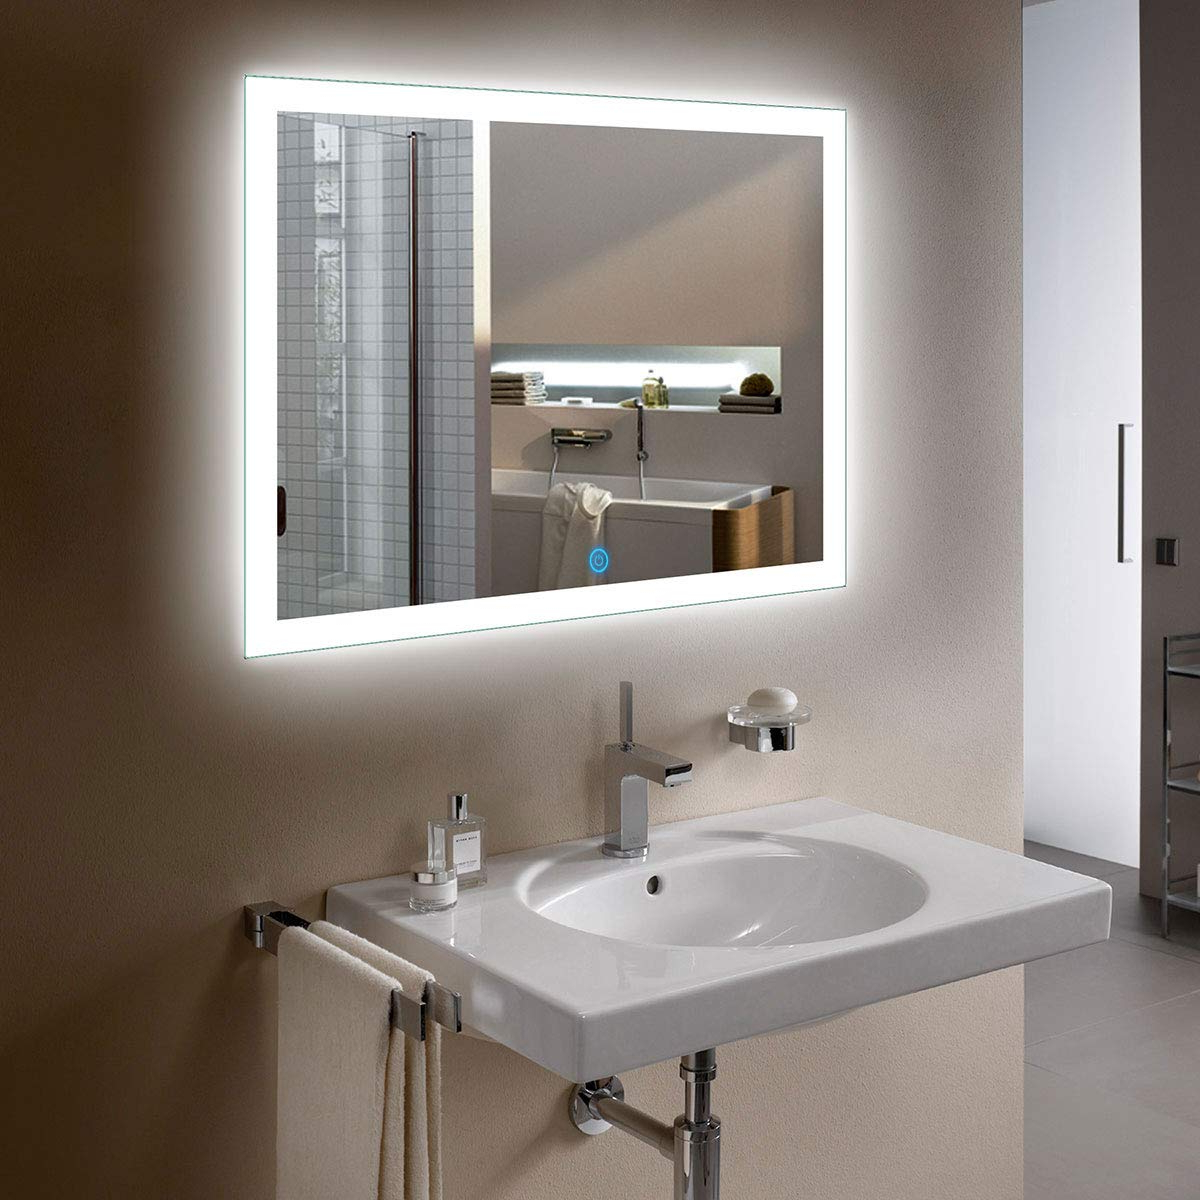 D Hyh Horizontal Rectangle Illuminated Bathroom Wall Mirror White Mirror  With Lights With Touch Button 36 X 28 Inch(D N031 I) For Most Recently Released Horizontal Wall Mirrors (View 4 of 20)